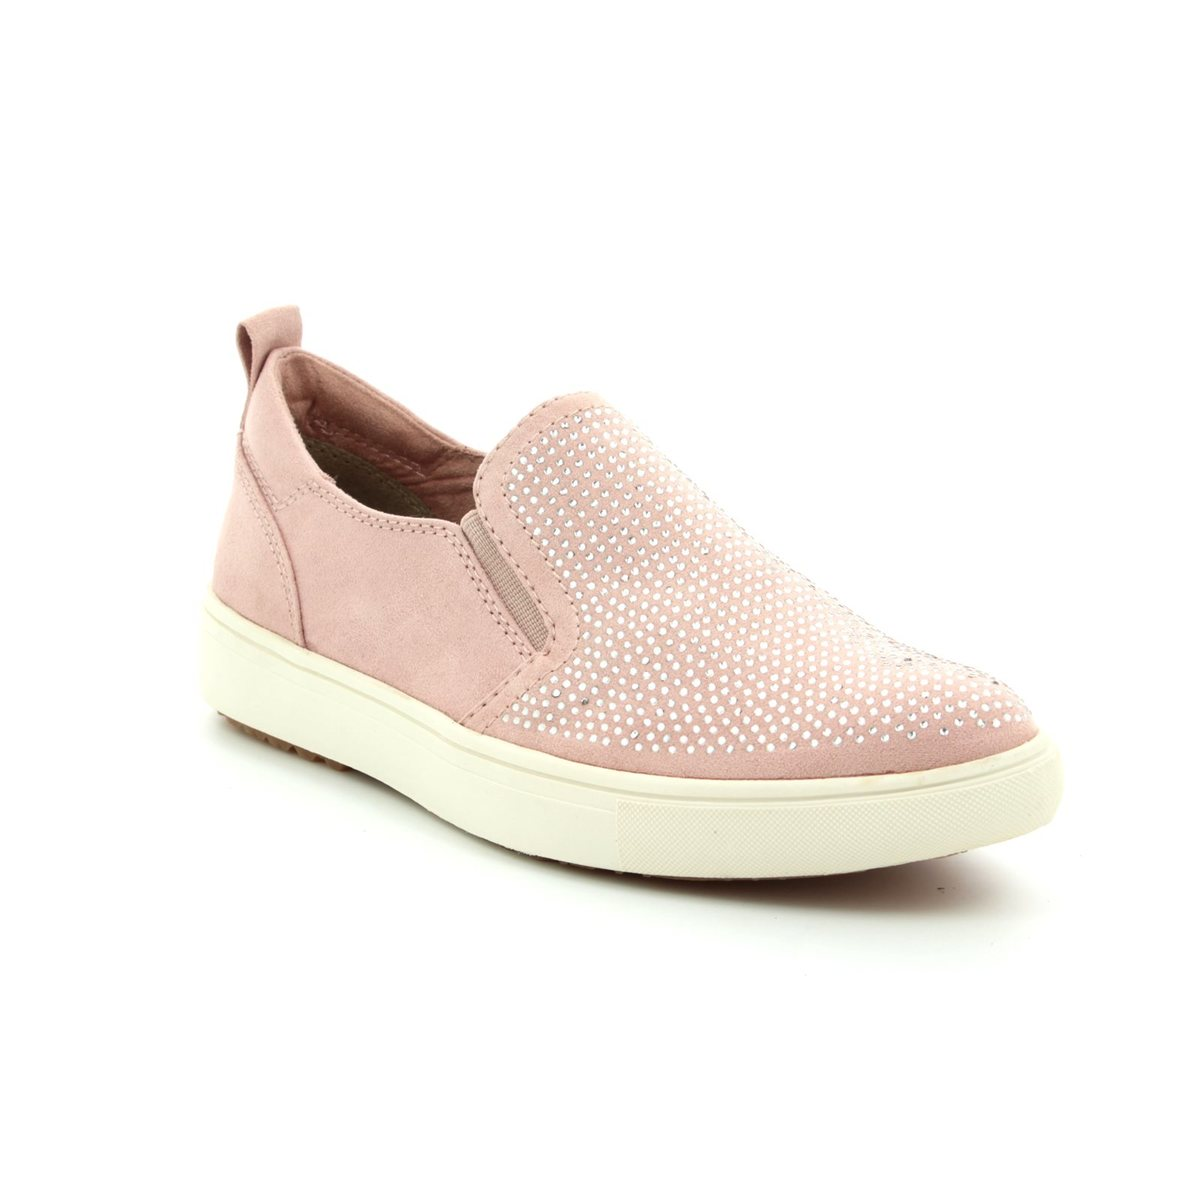 Tamaris Omoto women's Slip-ons (Shoes) in Authentic Buy Cheap Outlet Locations Cost Cheap Price Cheap Sale Outlet Locations QrCB0dJ